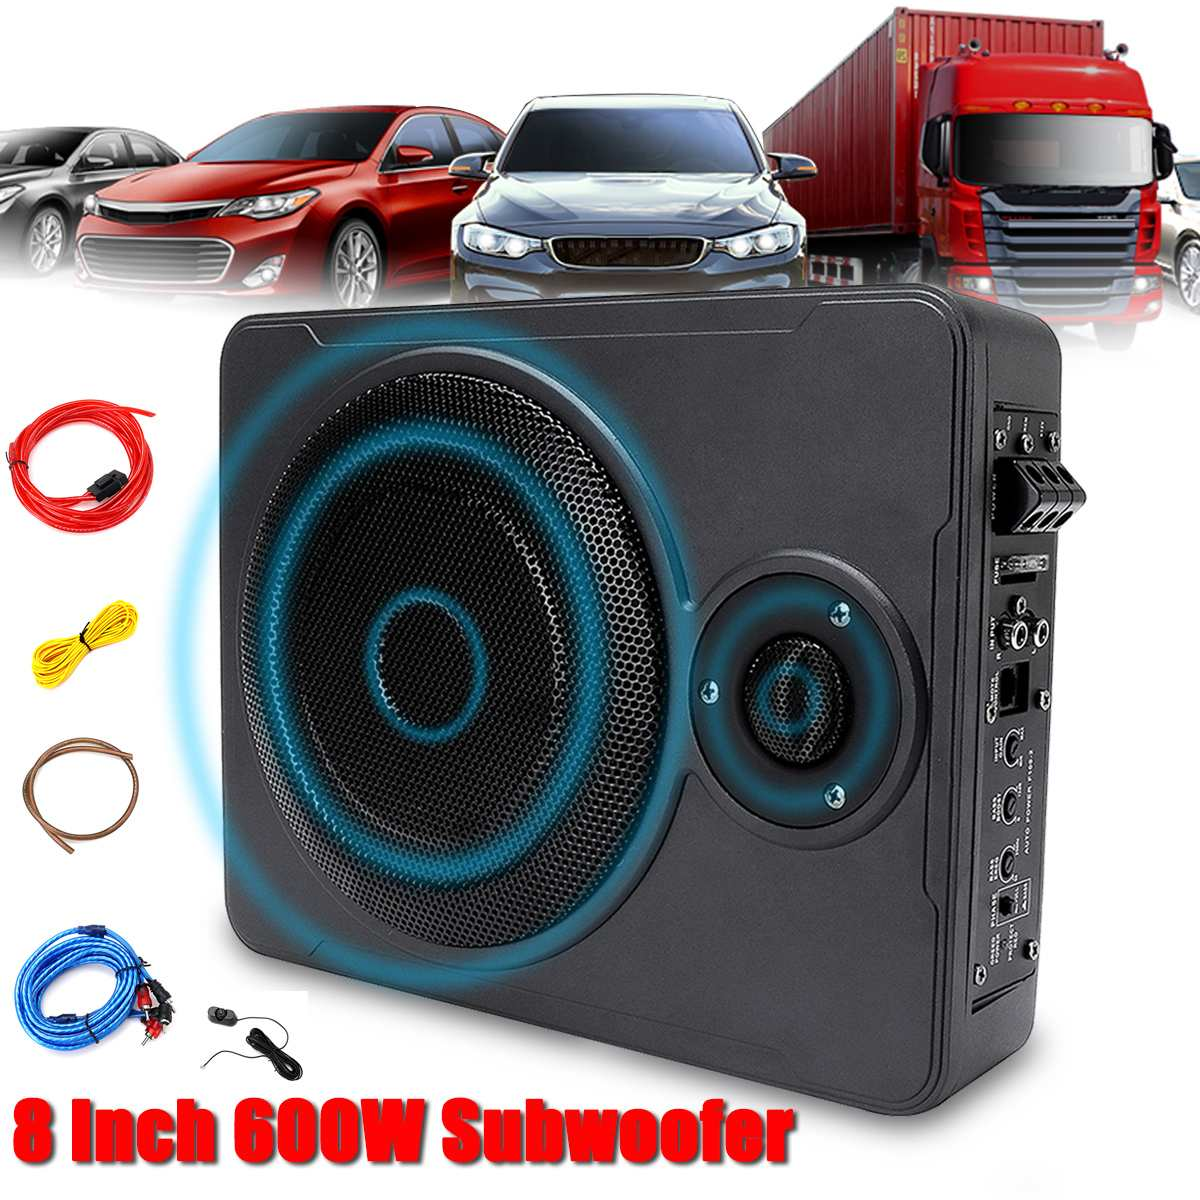 8 Inch 600W Car Home Subwoofer Under Seat SubStereo Subwoofer Car  Audio Speaker Music System Sound Car Subwoofers Speaker